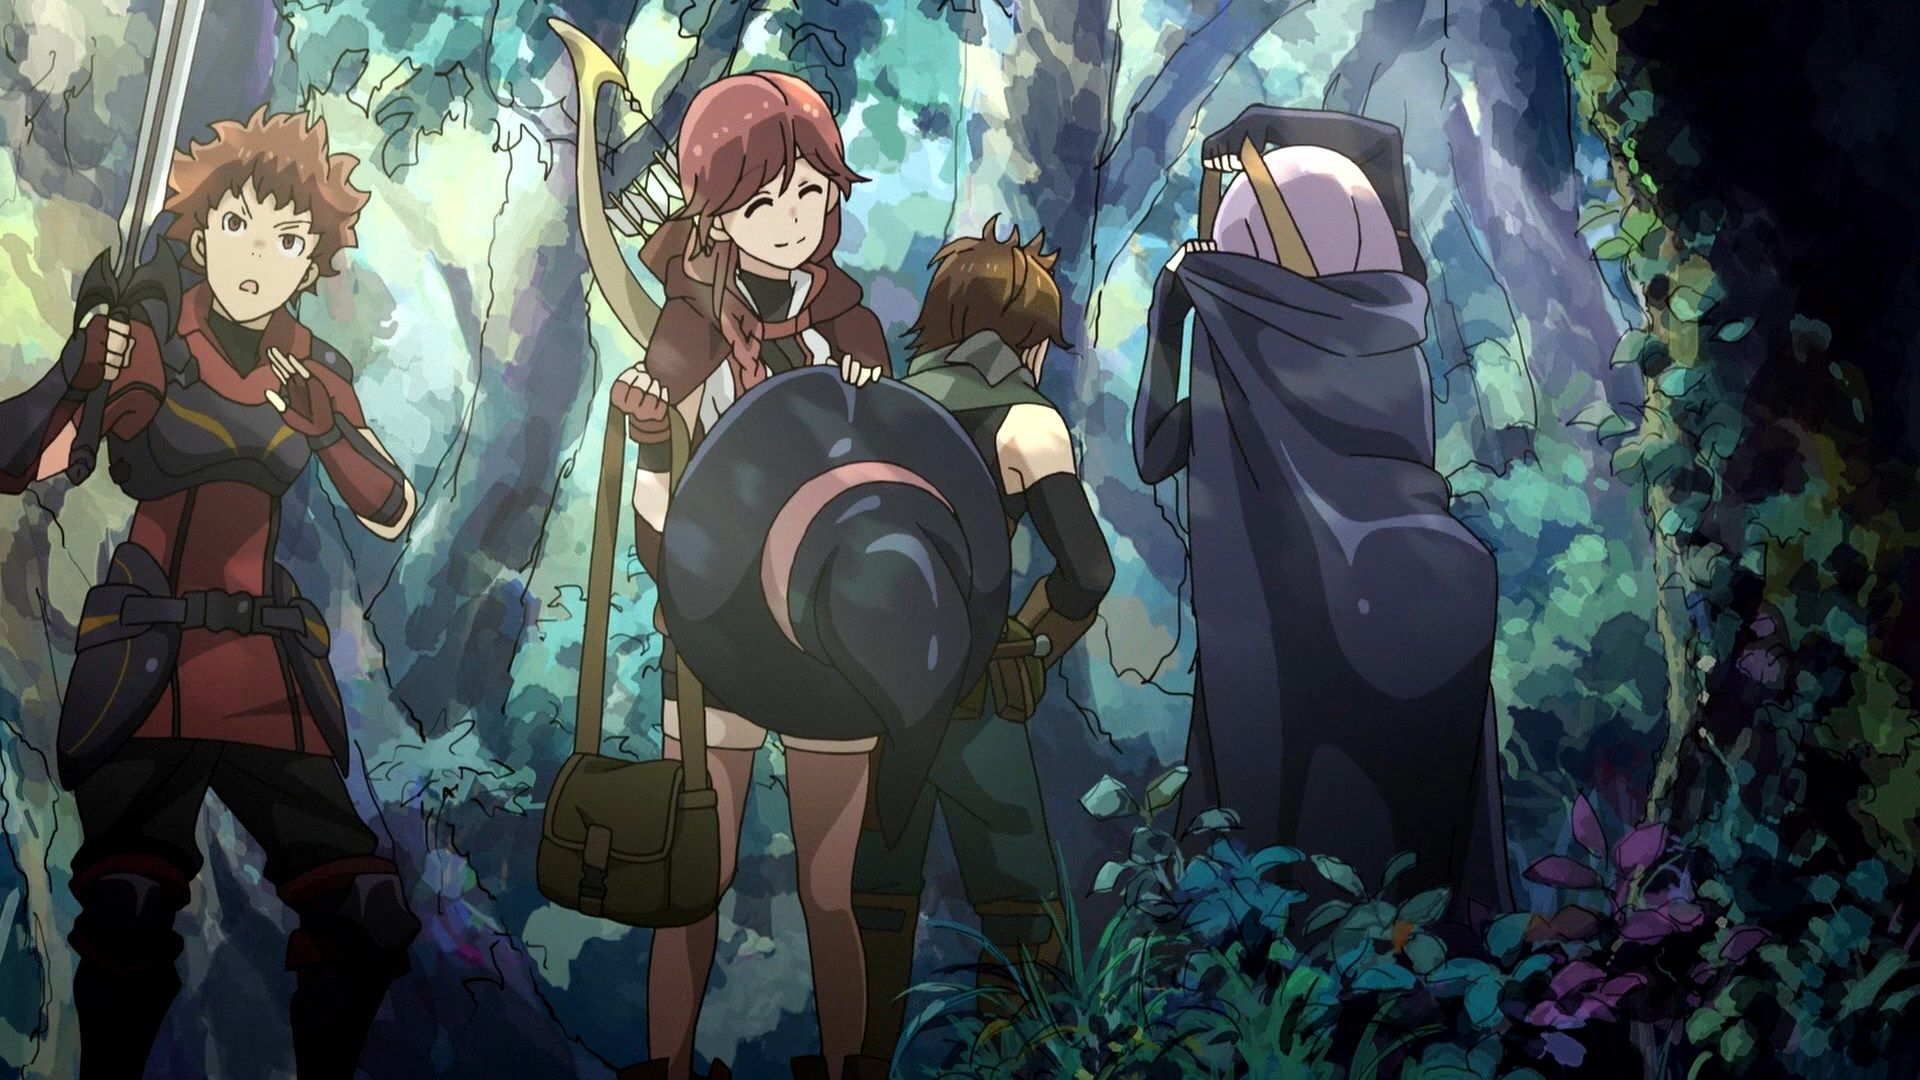 Spoilers Hai To Gensou No Grimgar Episode 2 Discussion R Anime Anime Good Anime Series Otaku Anime